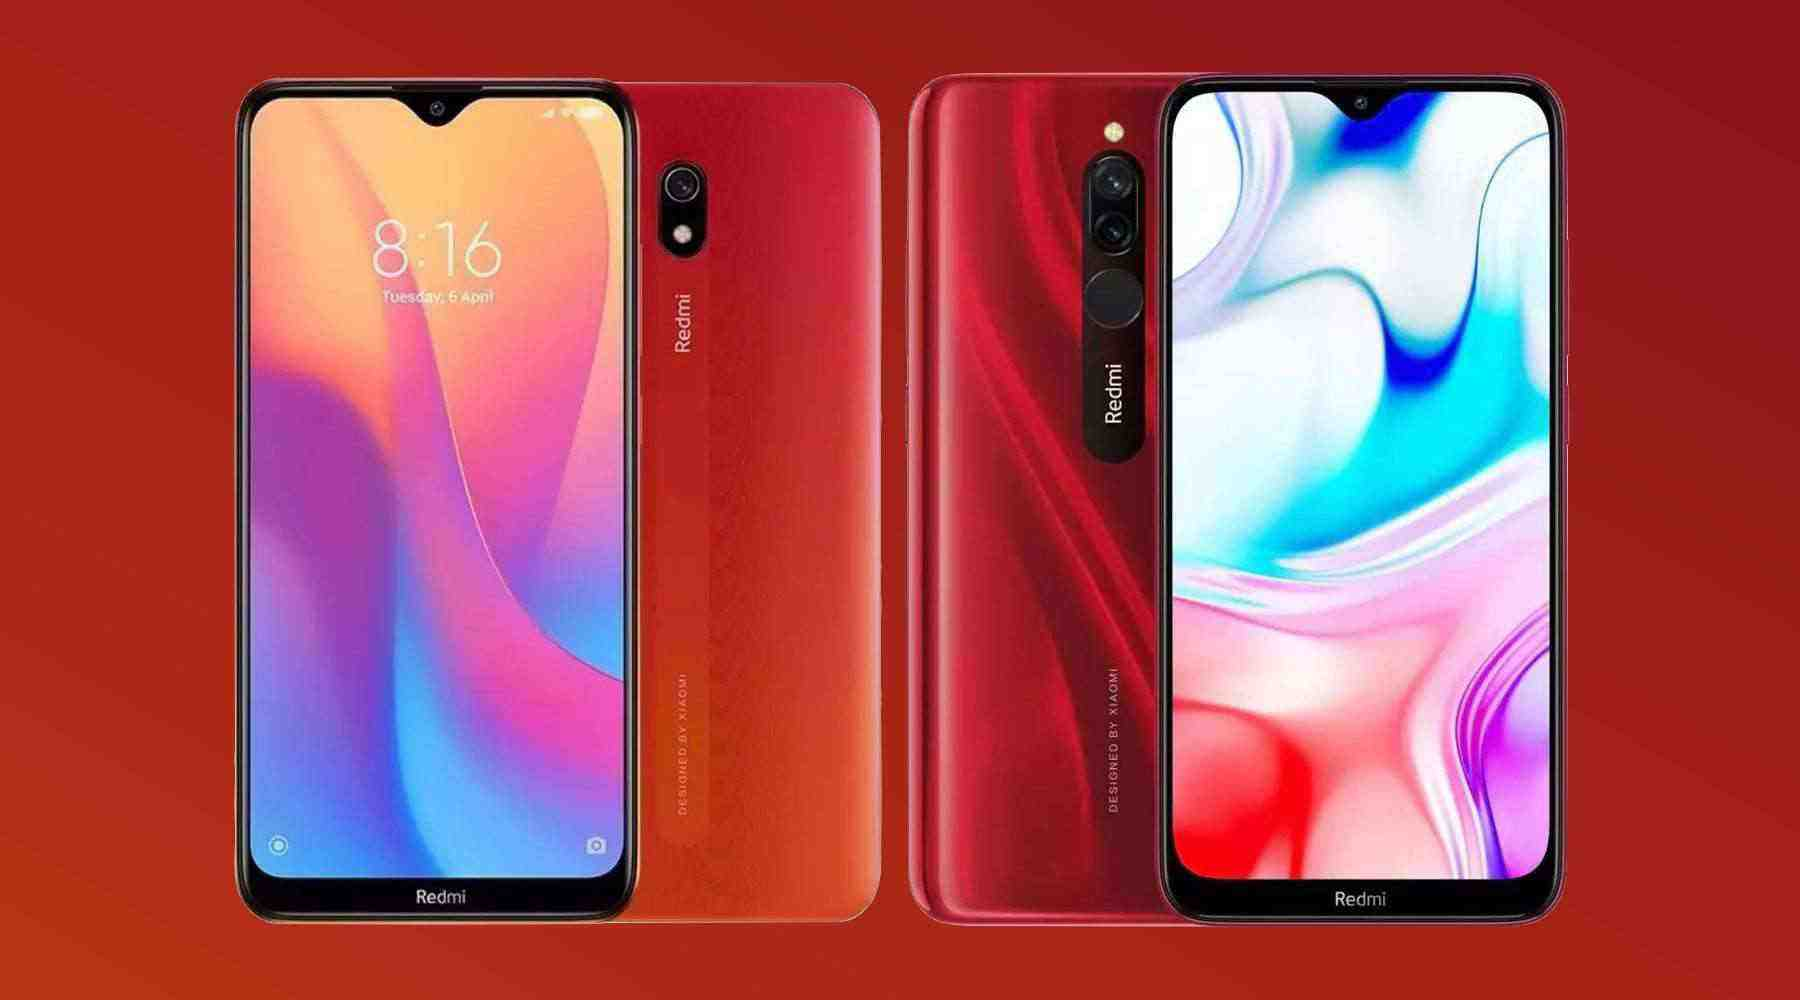 Redmi 8A are receiving the MIUI 12